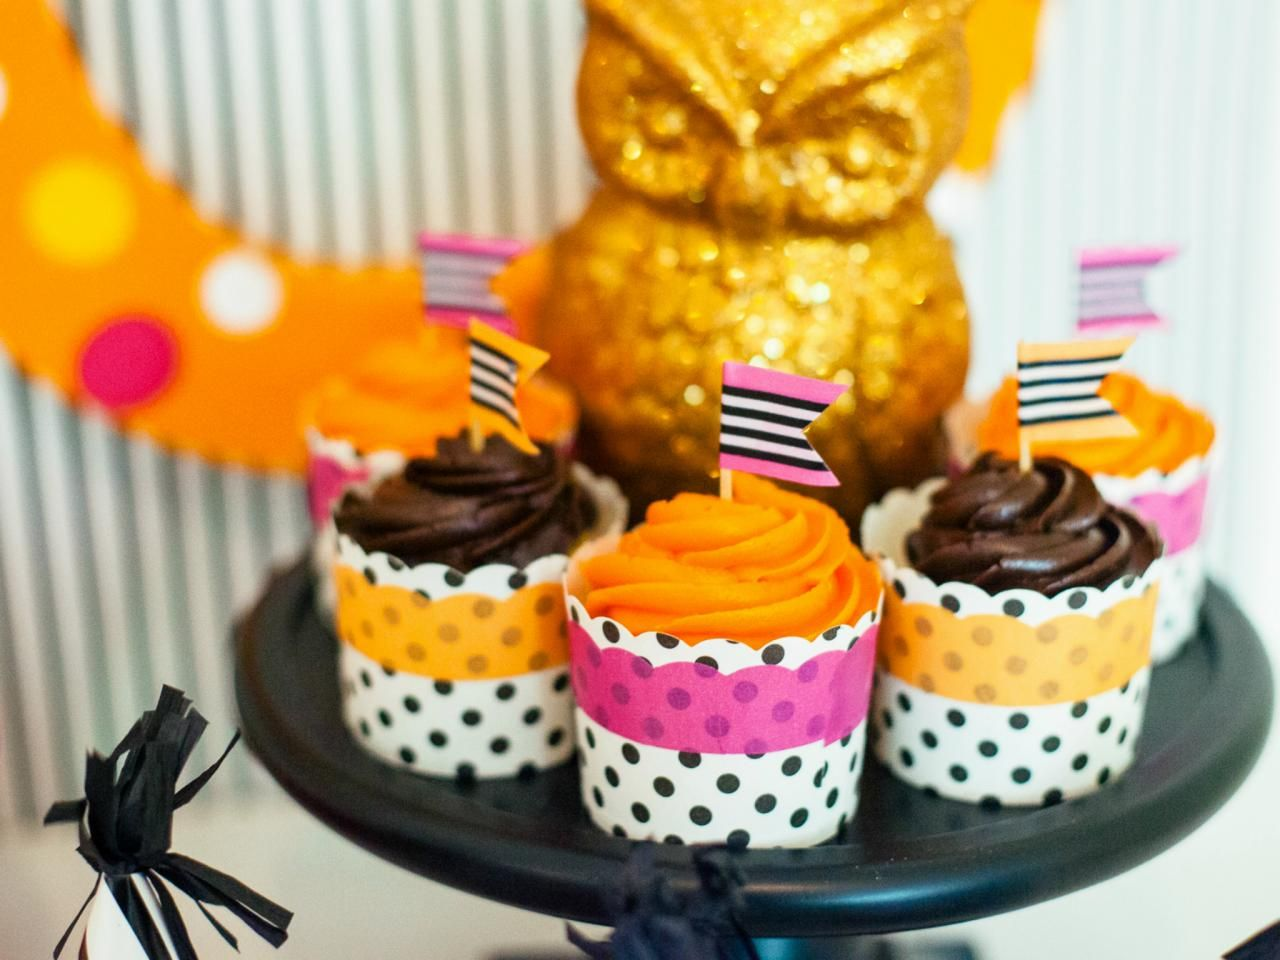 Halloween Party Decorations Made With Washi Tape Halloween parties - Decorate For Halloween